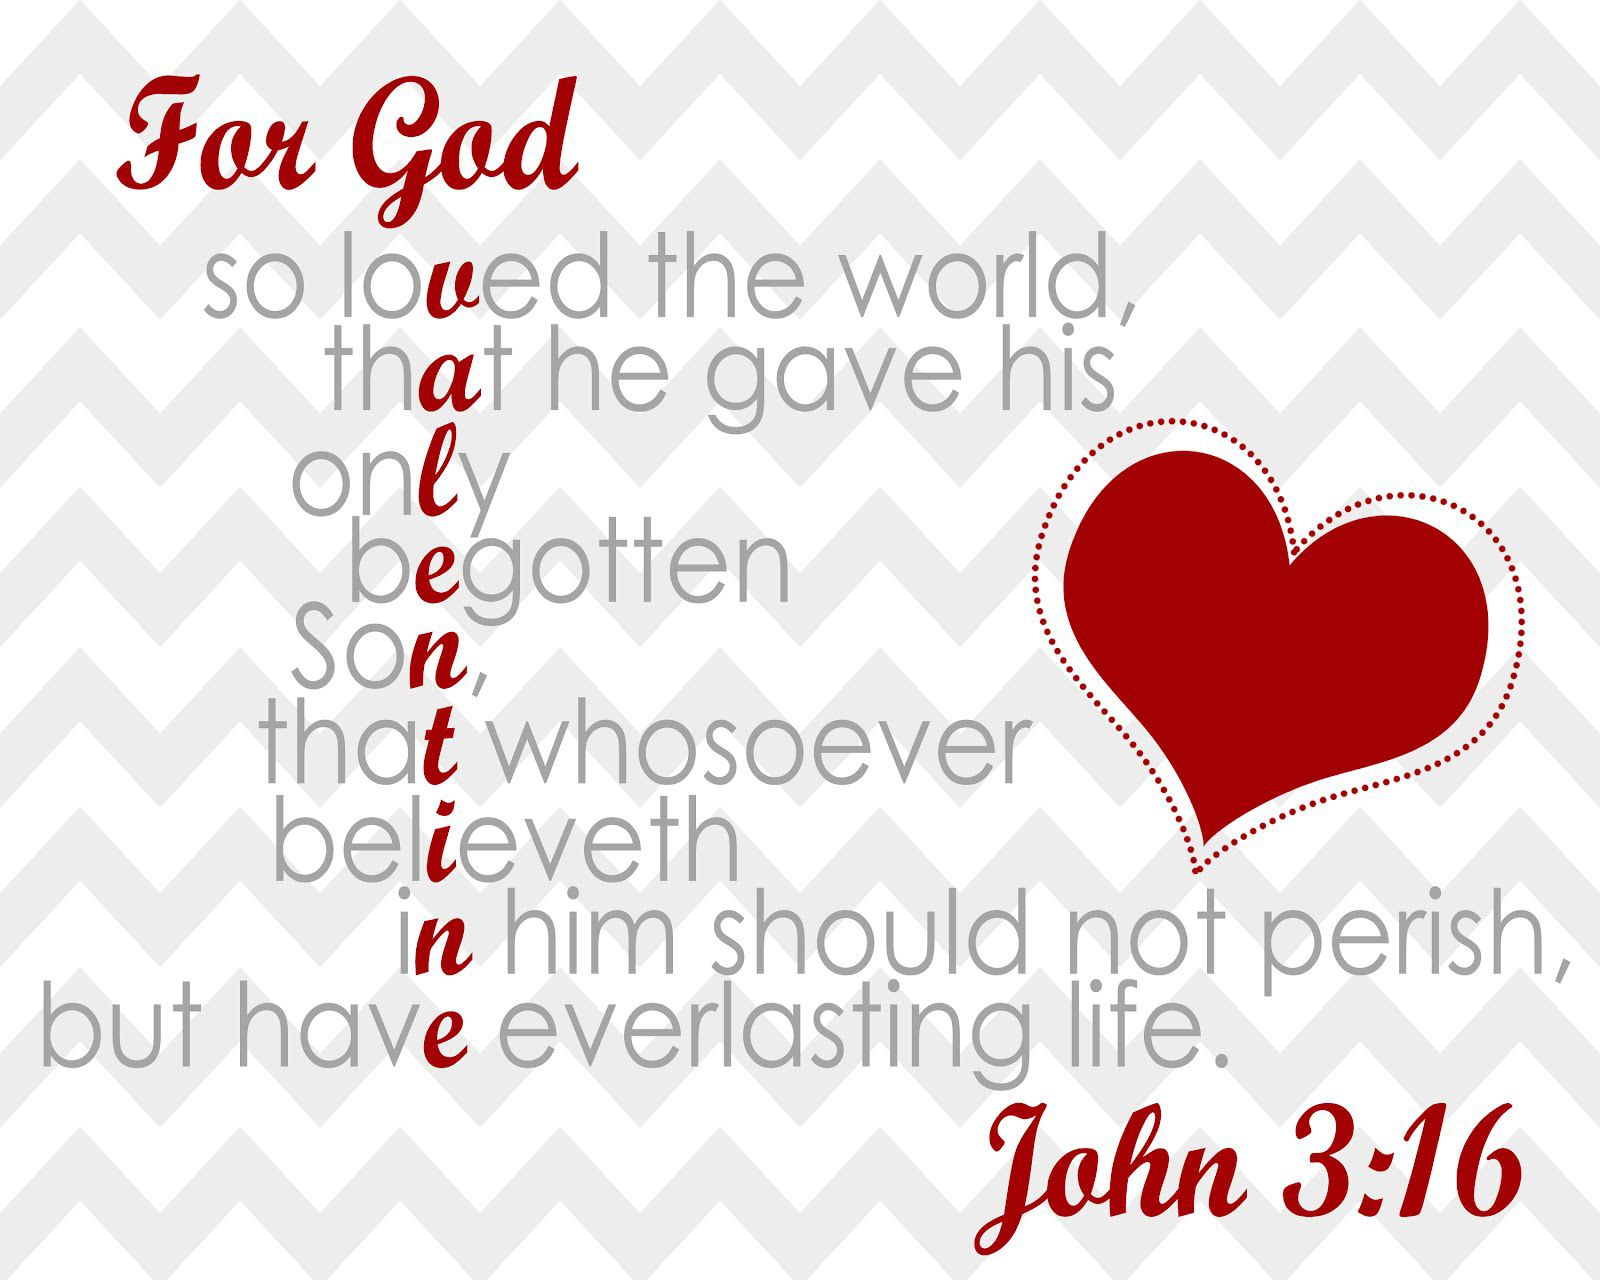 For God So Loved The World That He Gave His Only Begotten